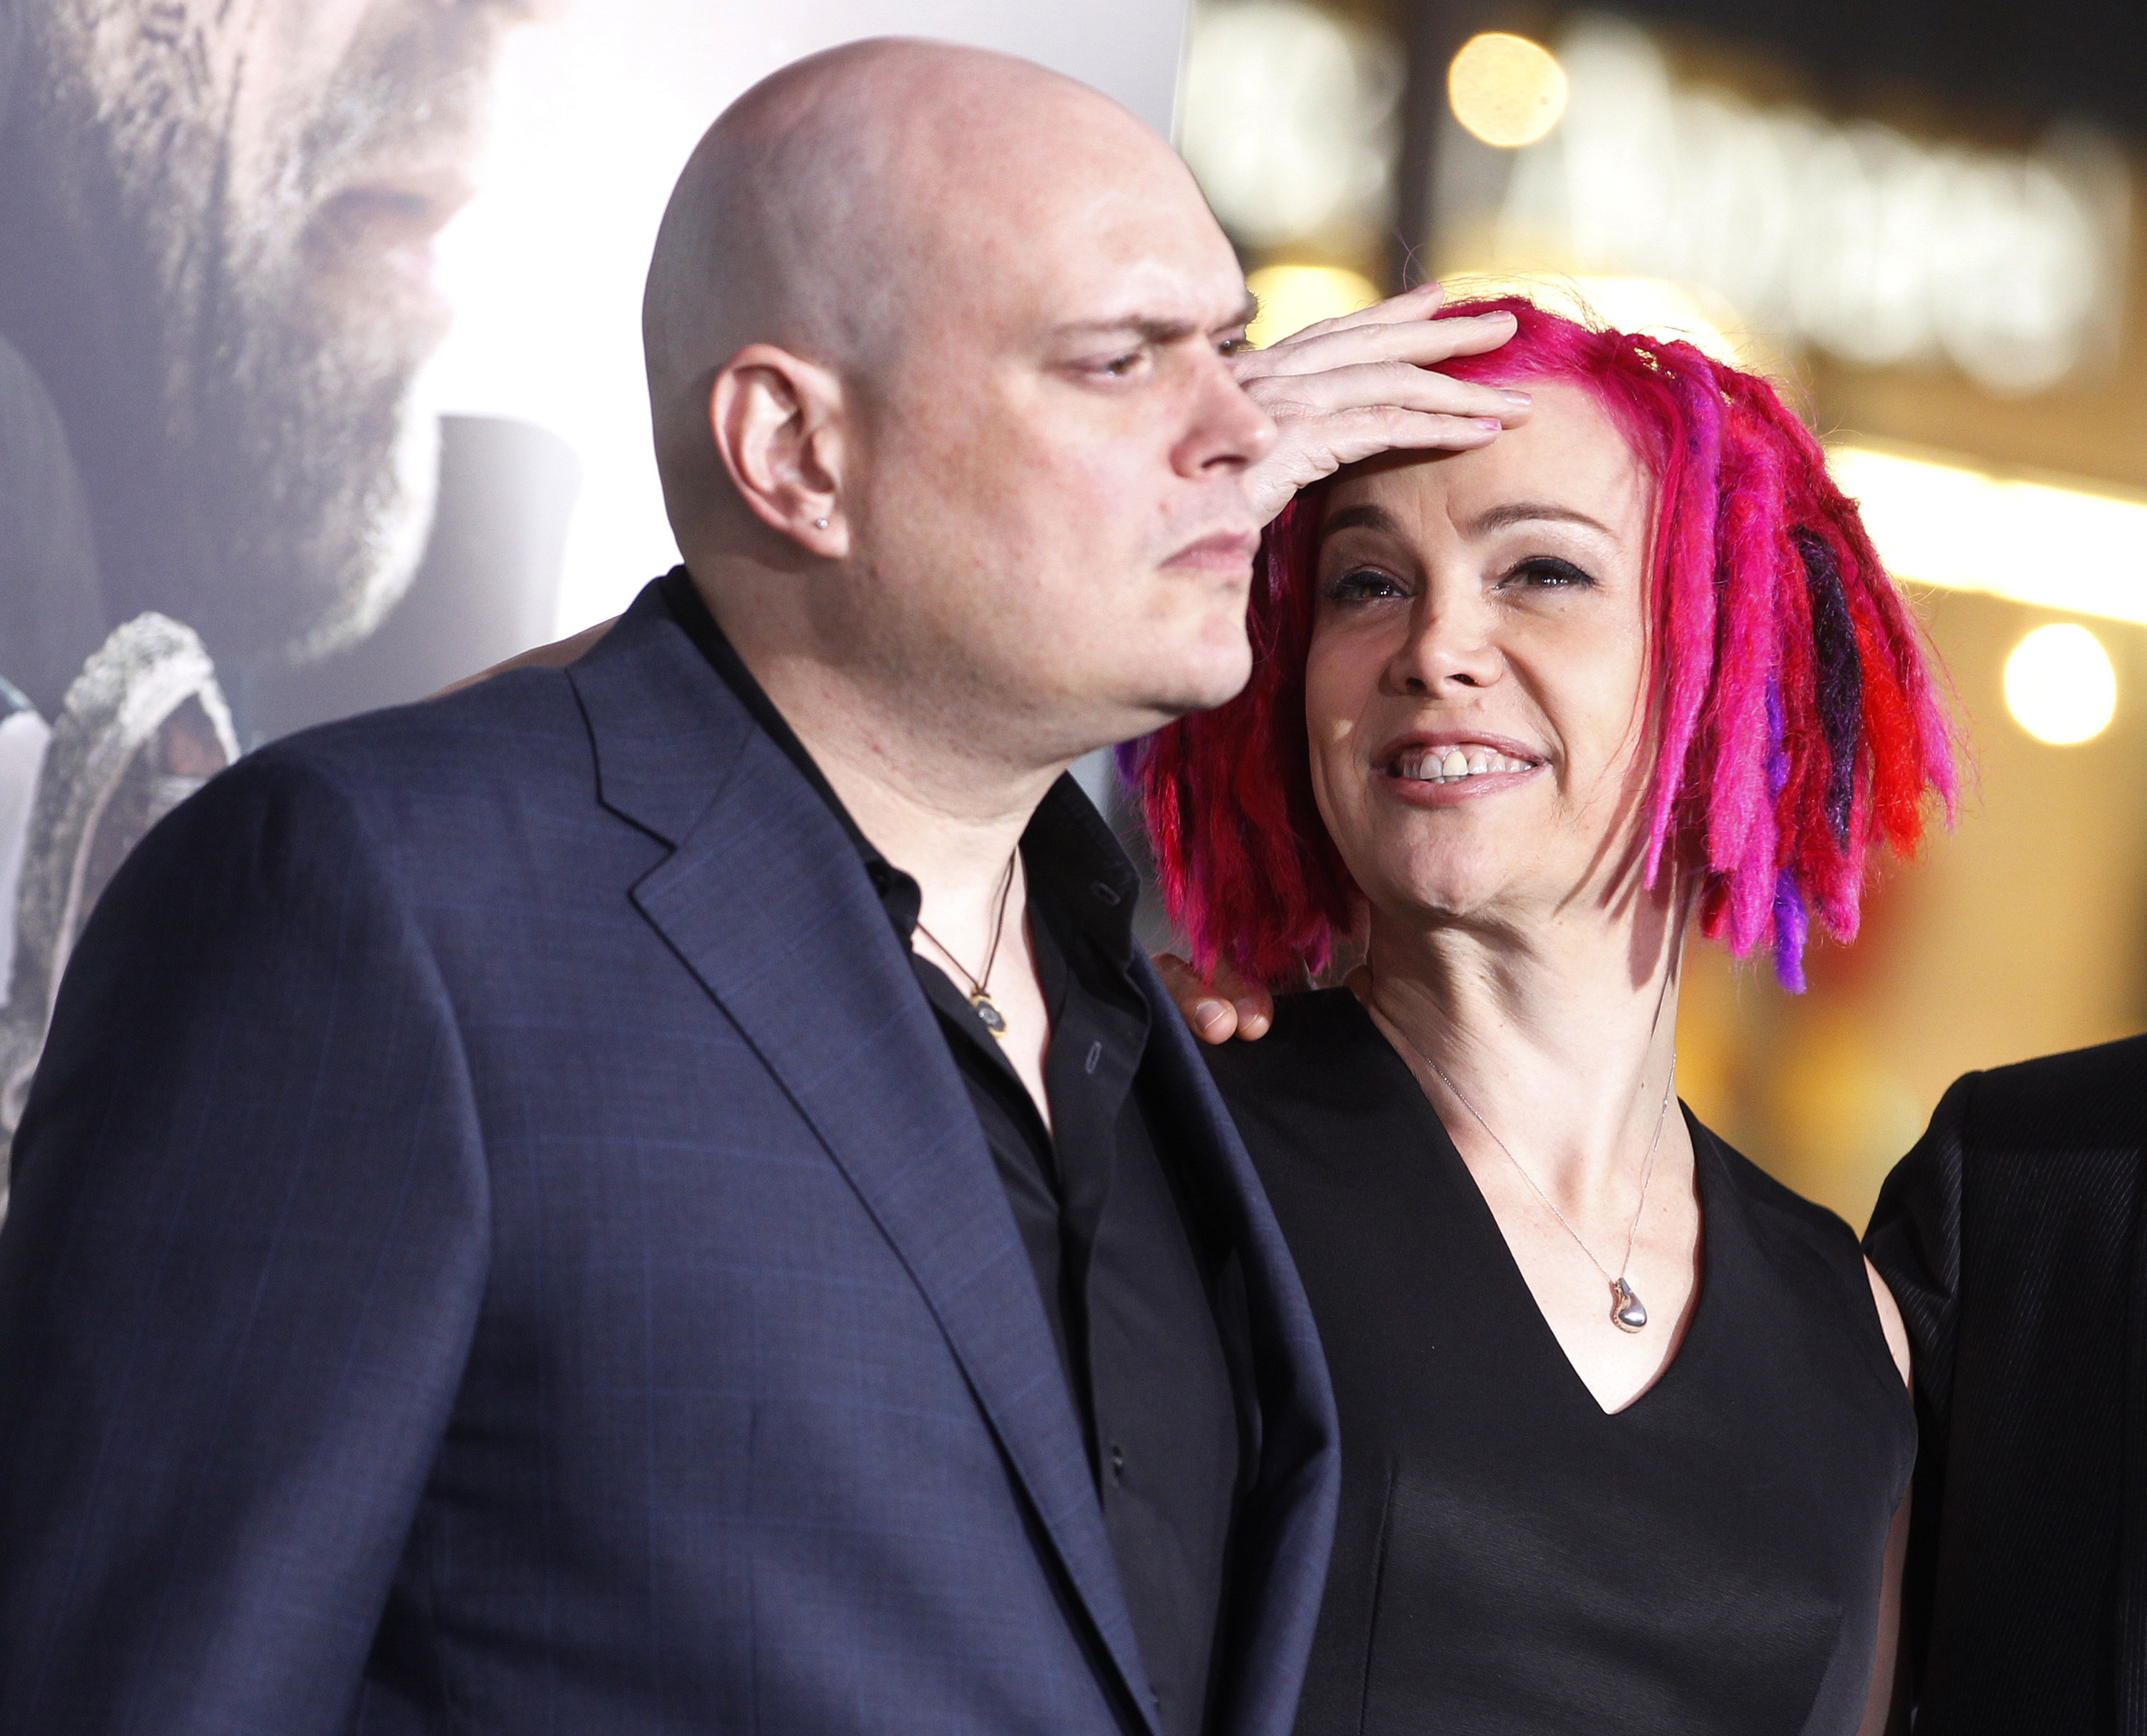 Lilly Wachowski prior to her transition, left, and sibling Lana Wachowski, the screenwriters, producers and directors of film Cloud Atlas, pose as they arrive for the film's premiere on Oct. 24, 2012